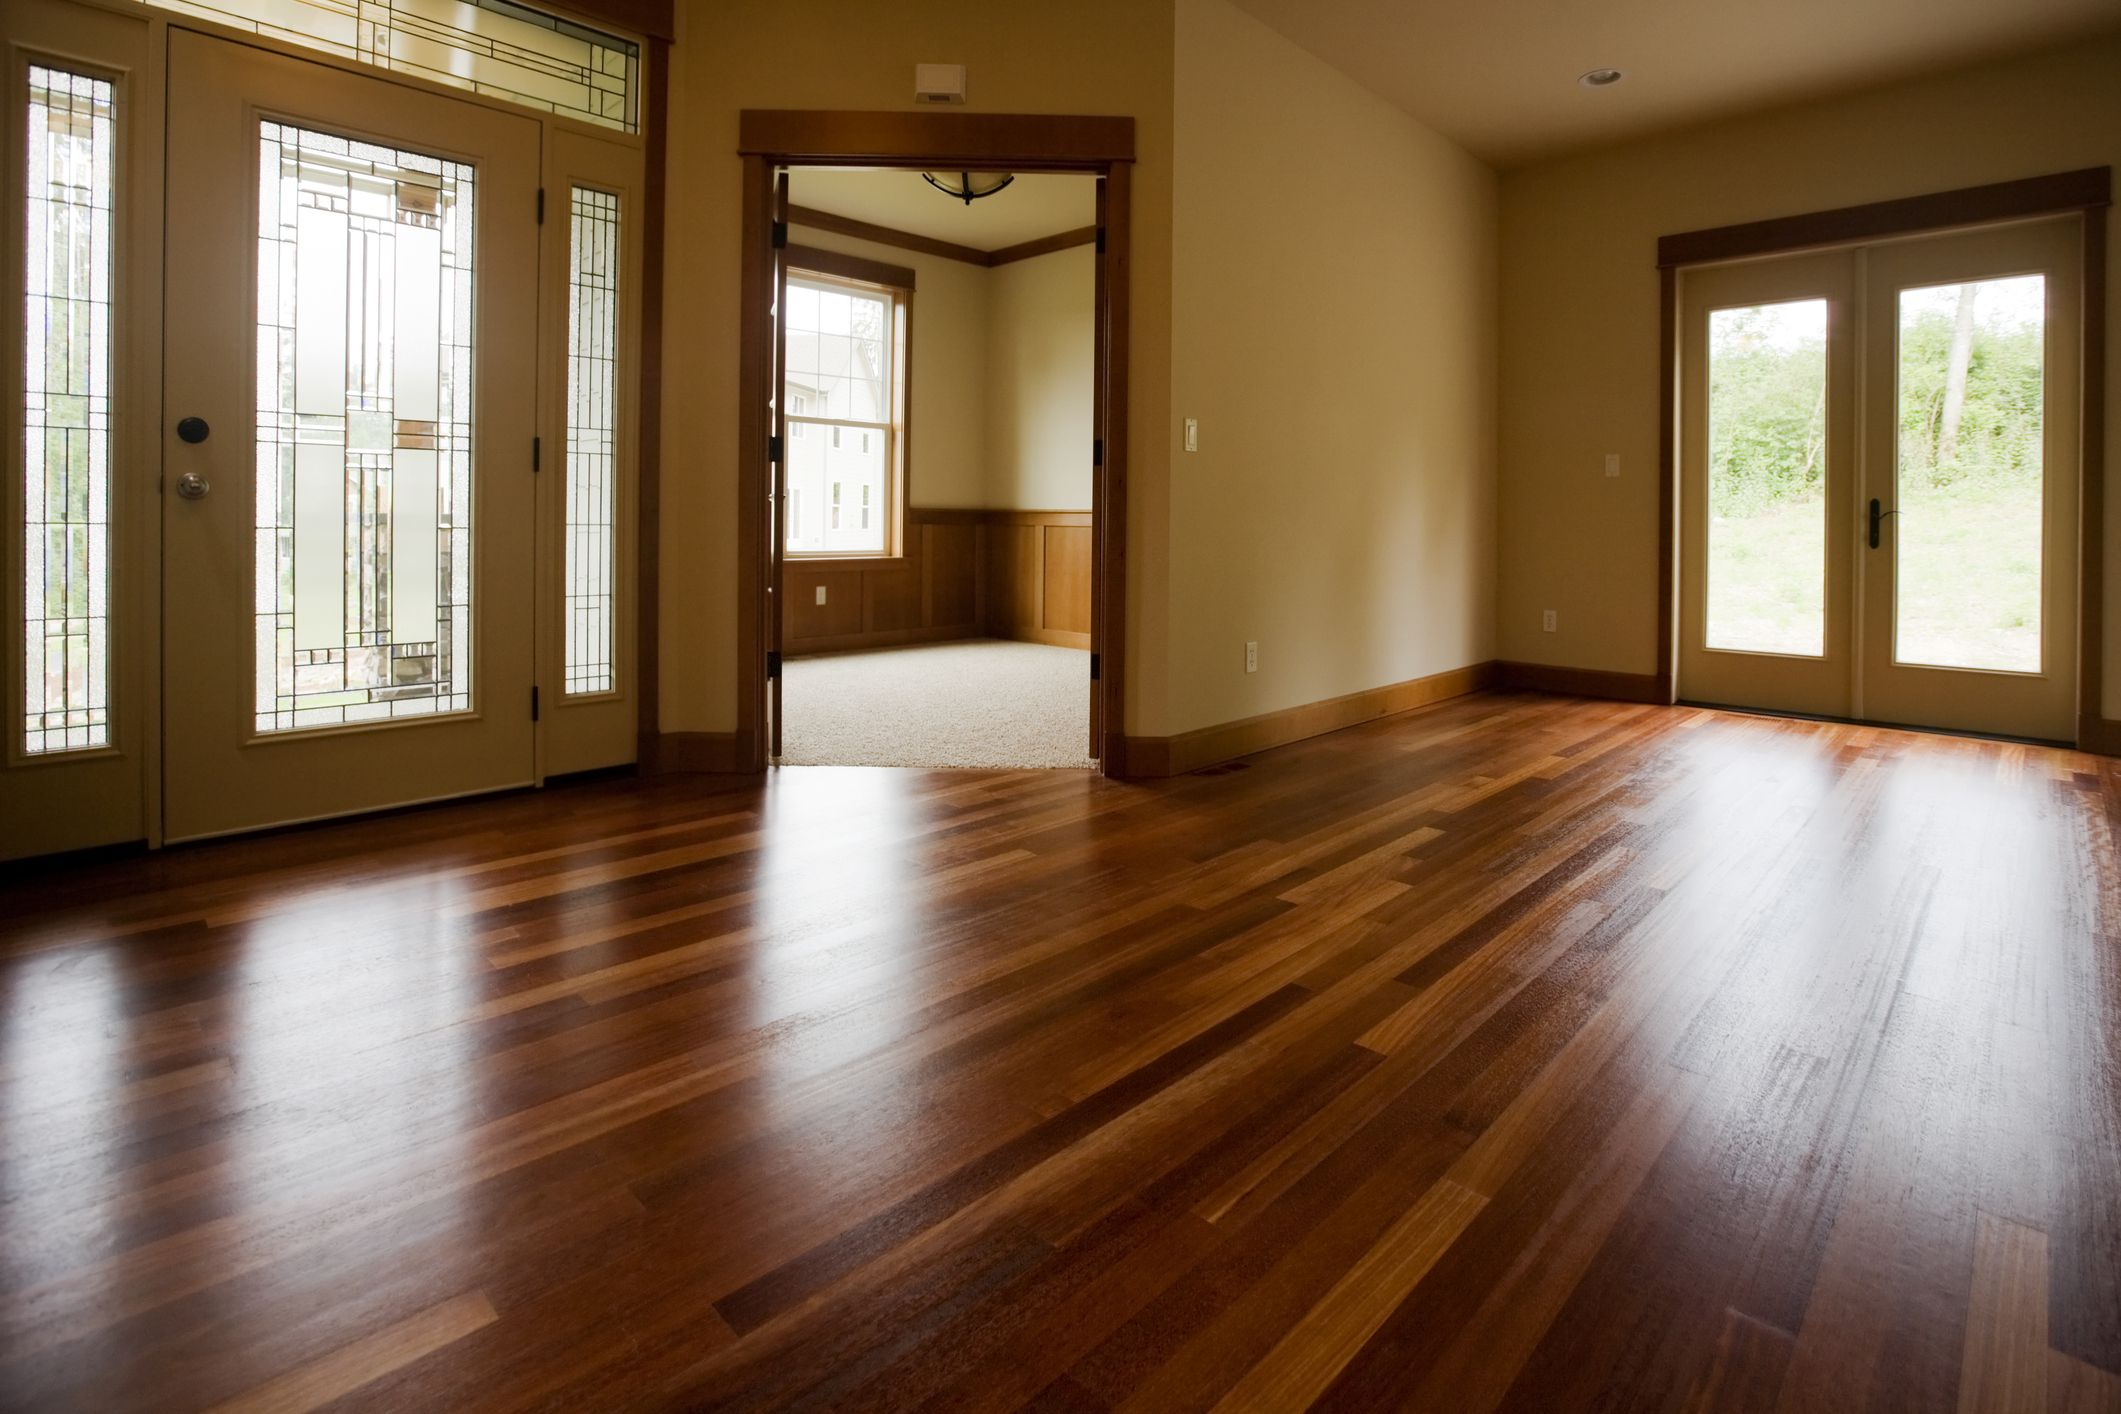 Use Caution When Steam Cleaning Hardwood Flooring